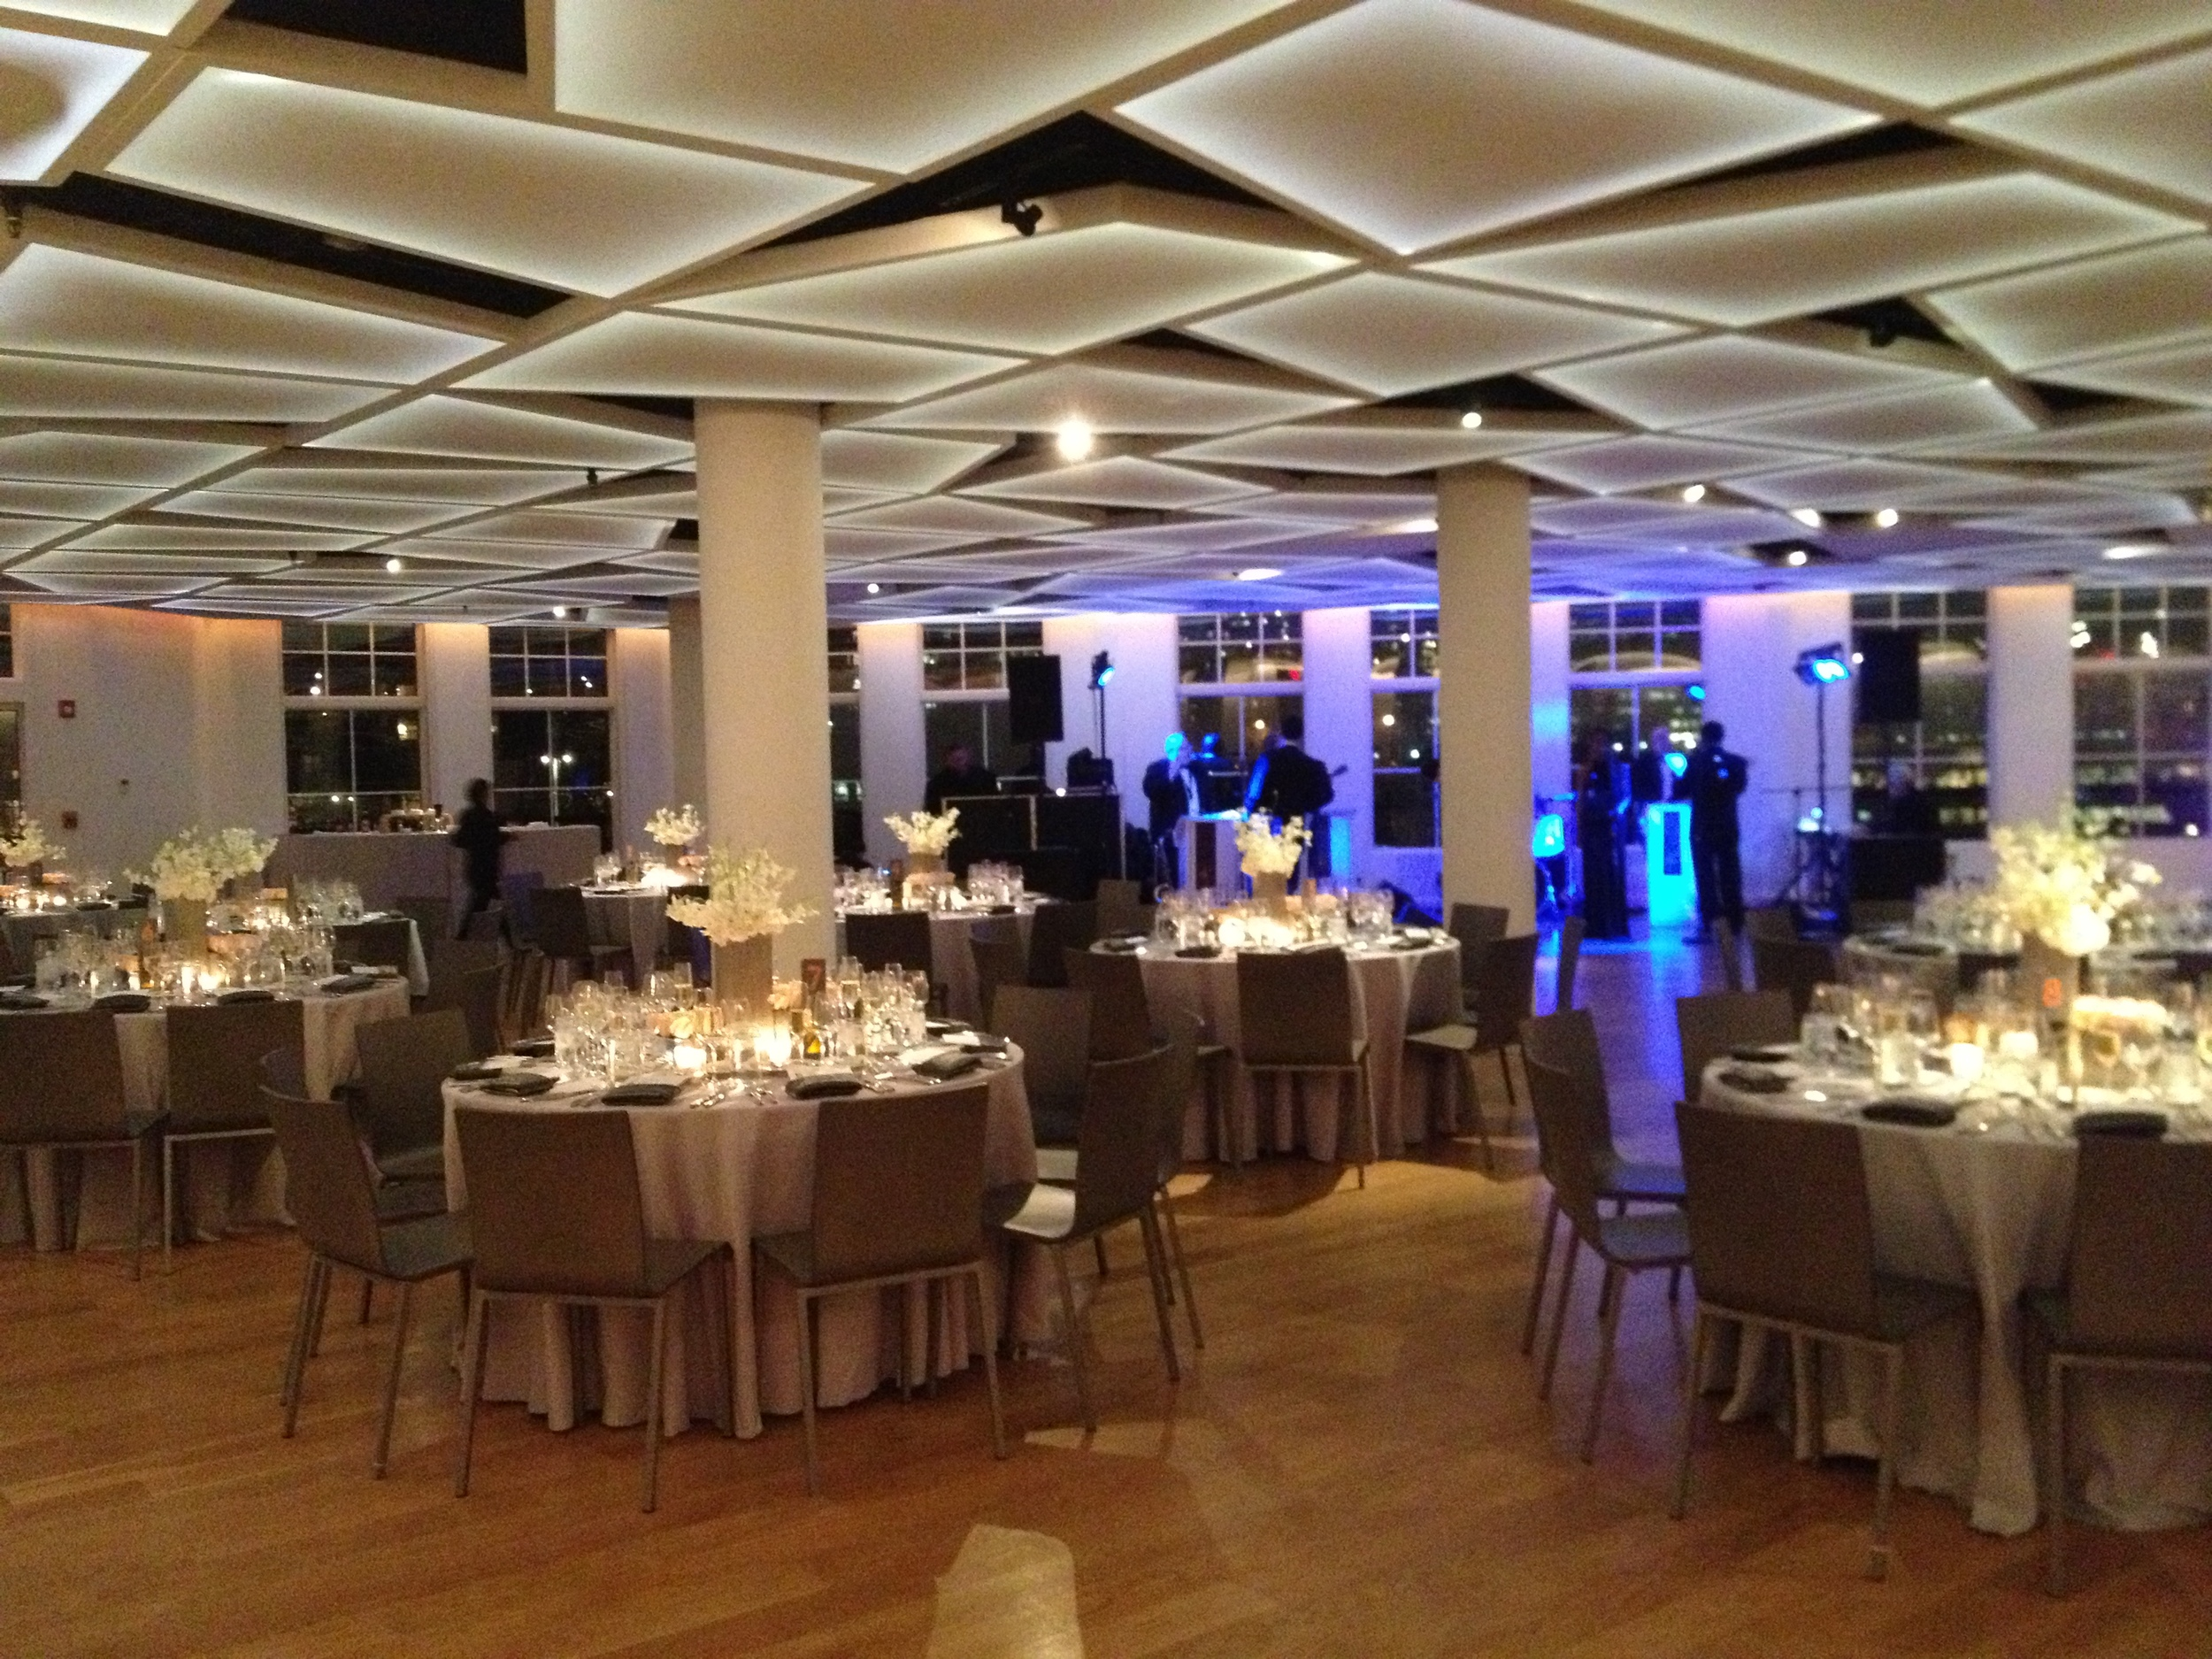 Event by The Finishing Touch Events